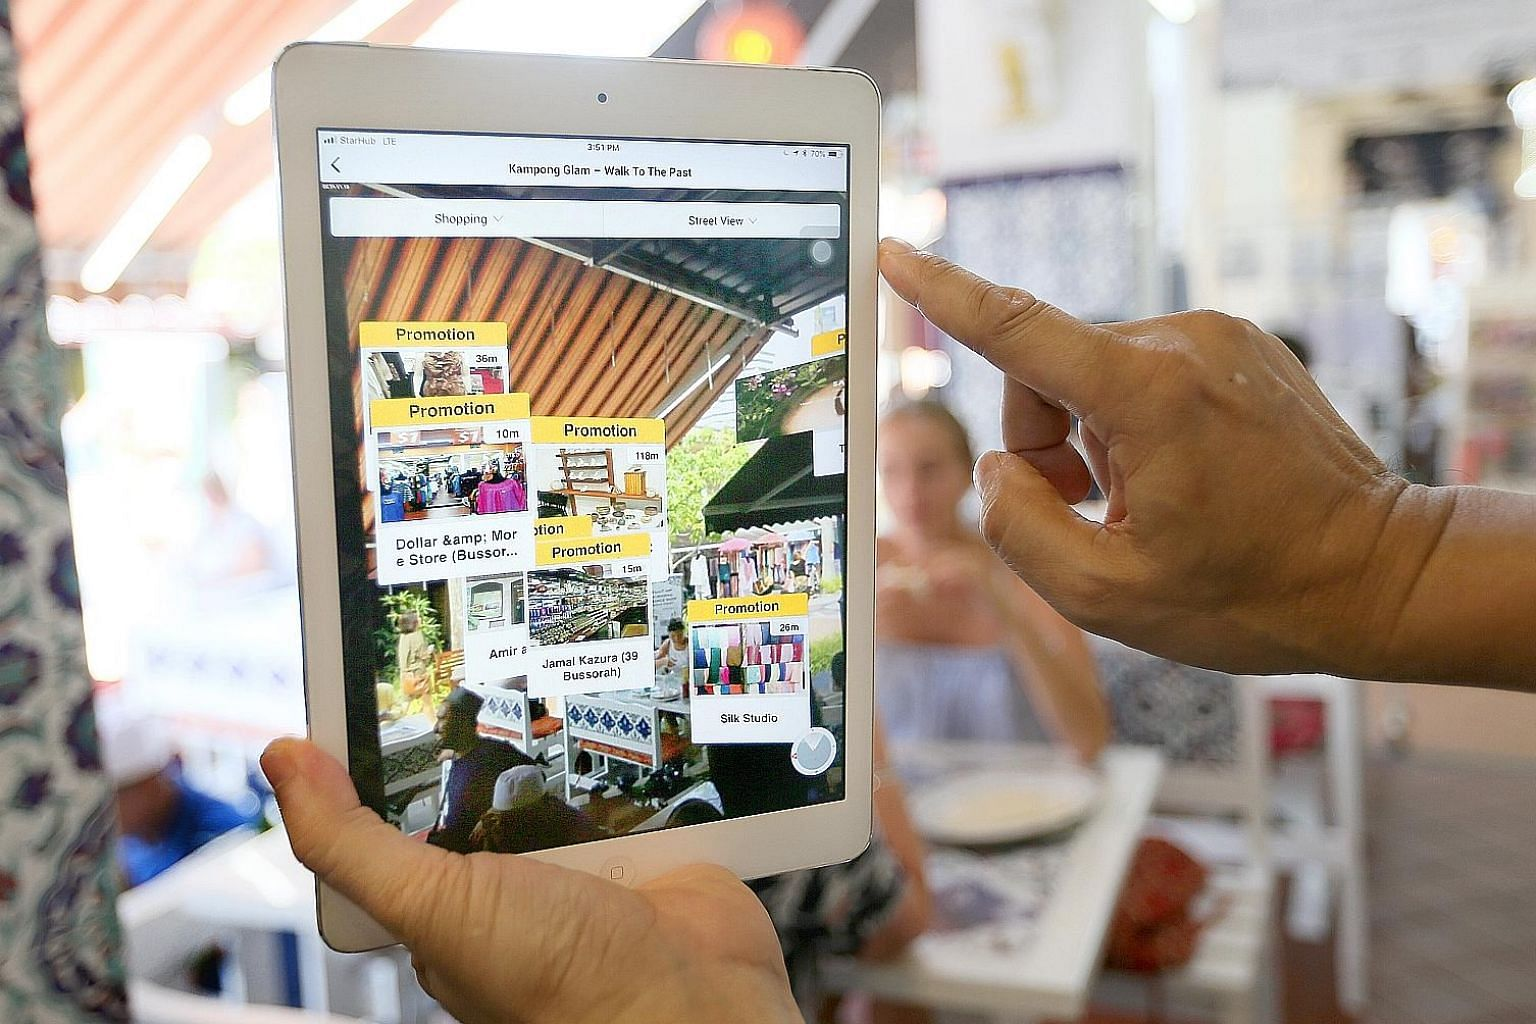 The Locomole app uses augmented reality and location-based technology to help users navigate the area and access deals. Other digital initiatives include an integrated point-of-sale system for merchants.